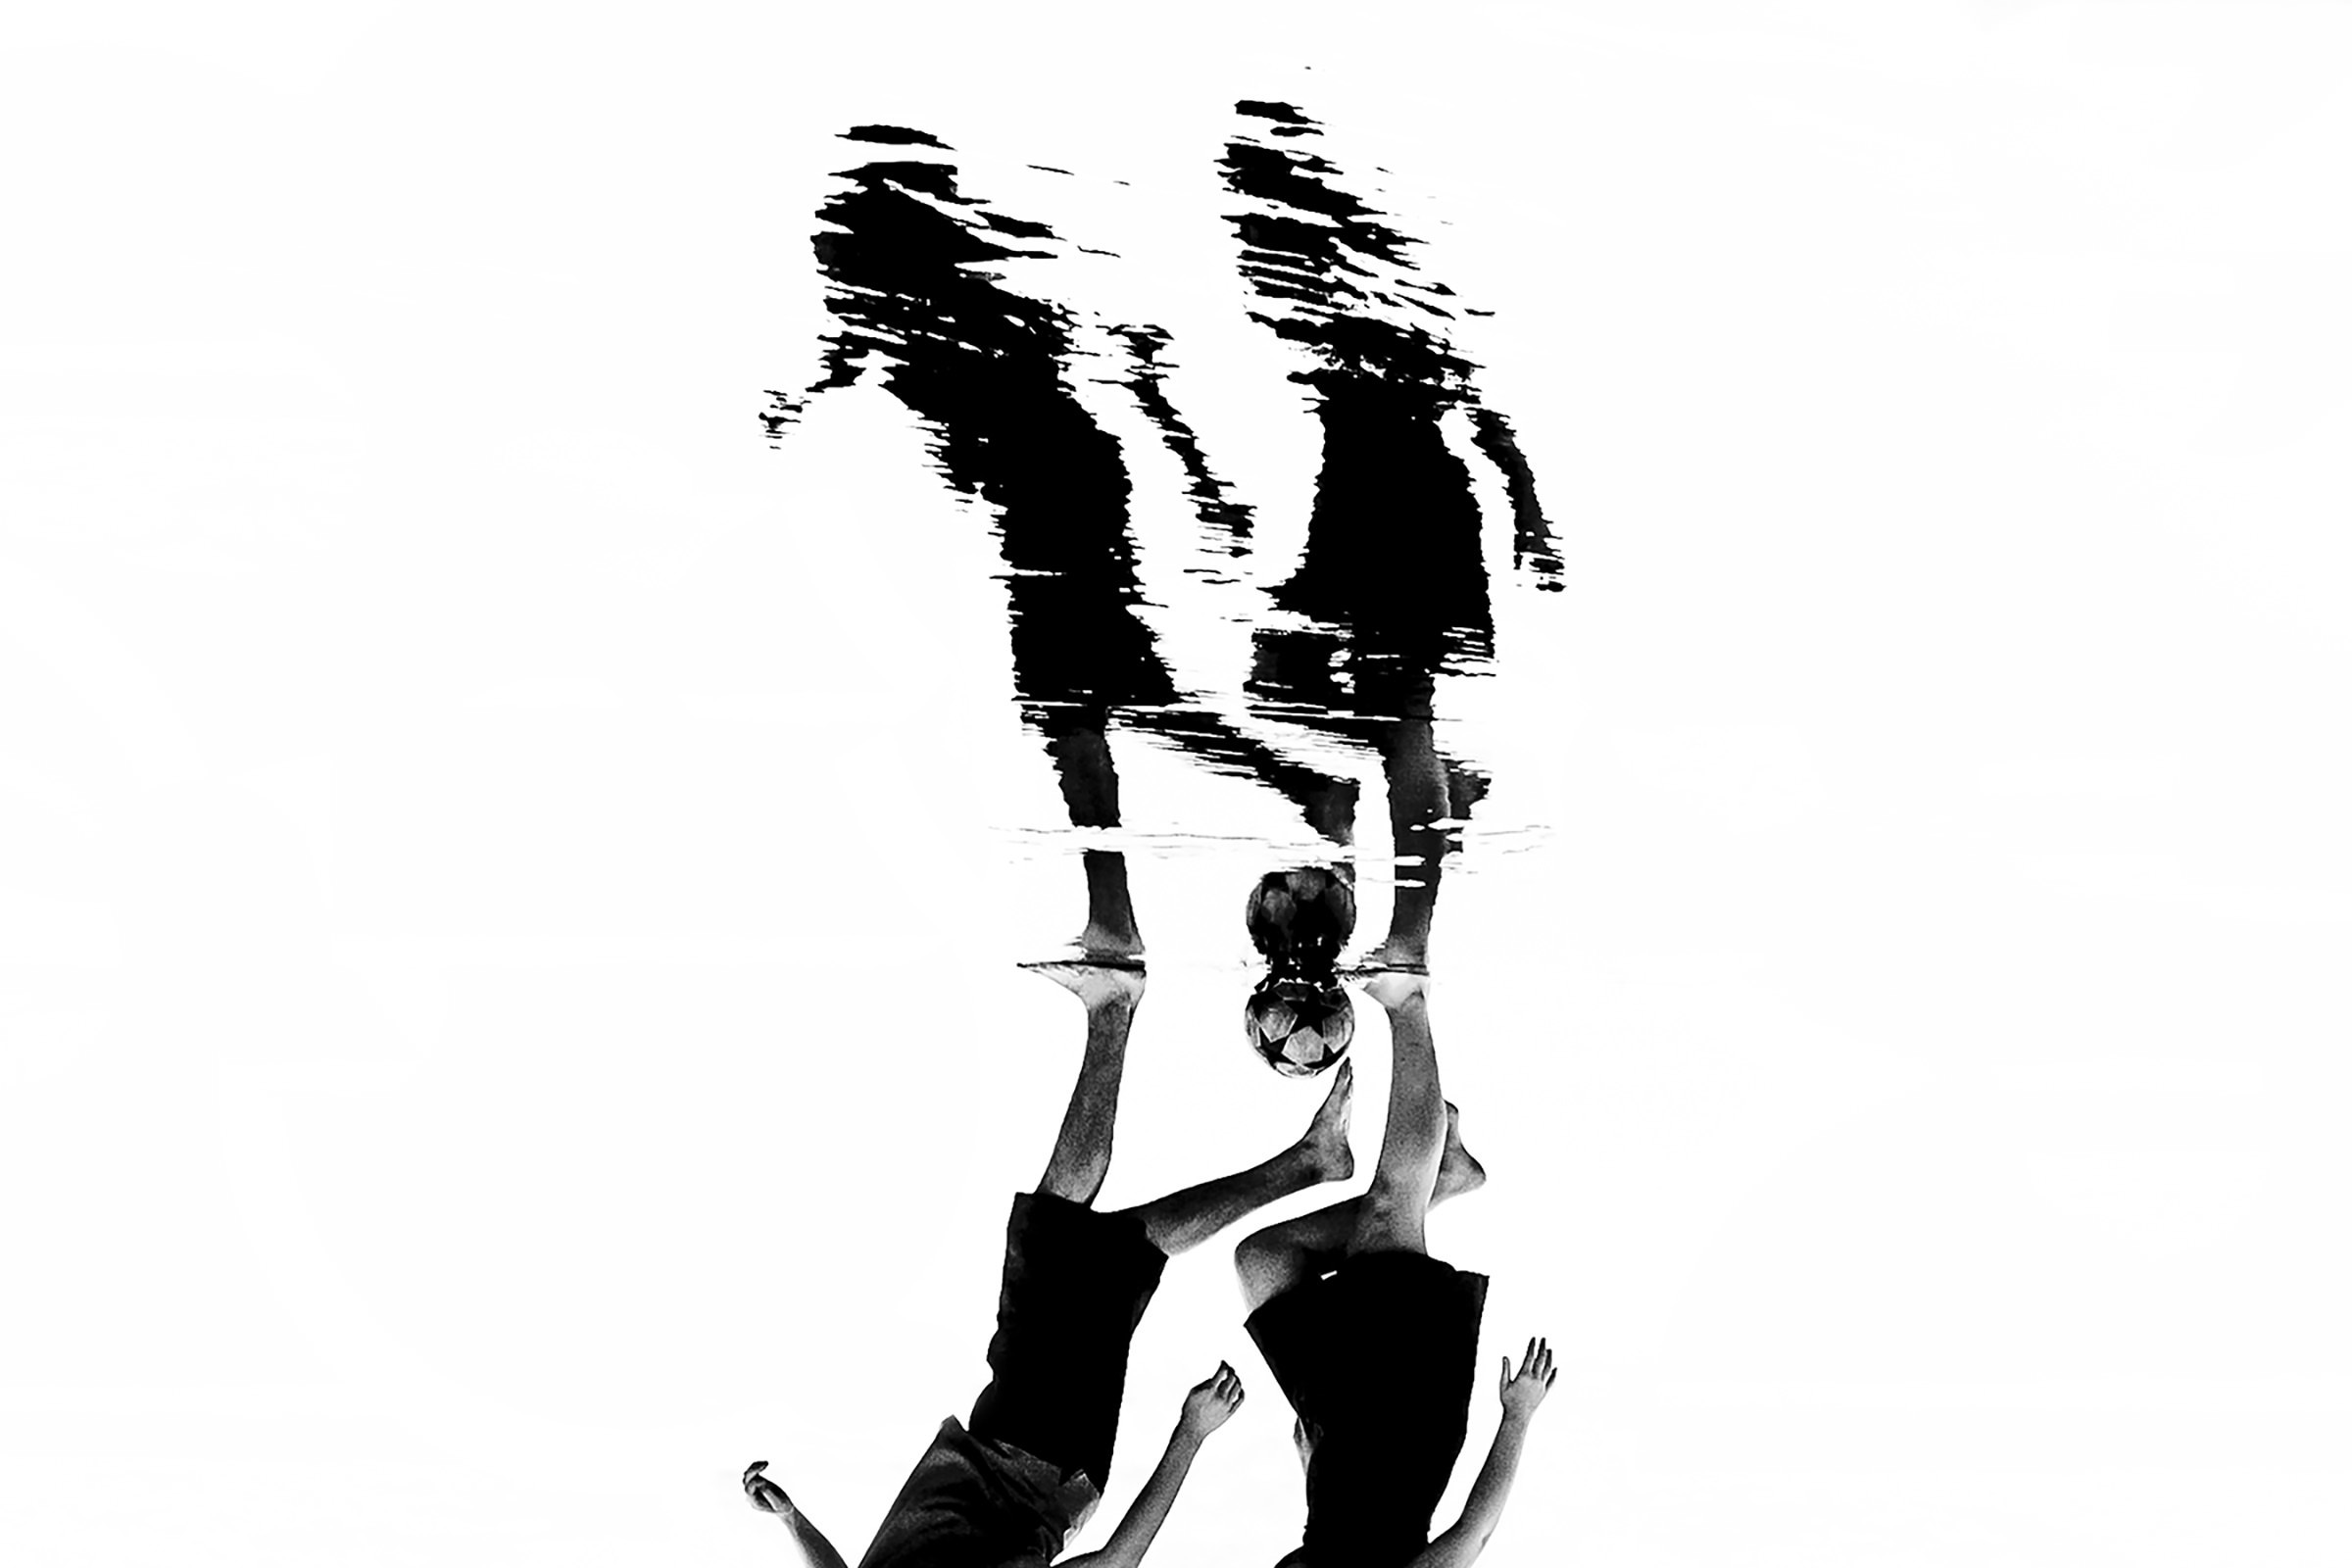 Couple walking with soccer ball and reflection - photo by Ian Chin Photography